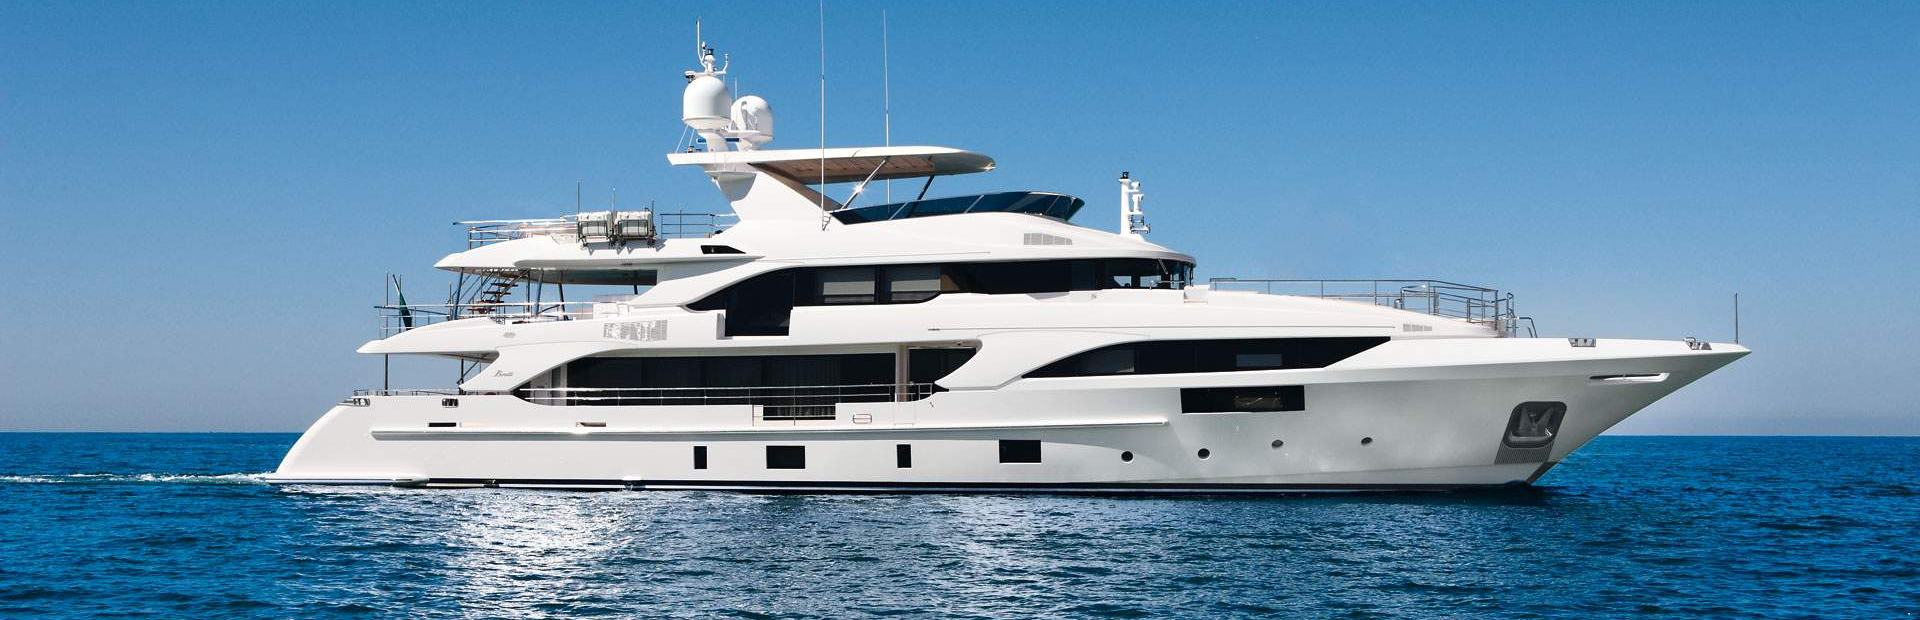 Classic Supreme 132 Yacht Charter